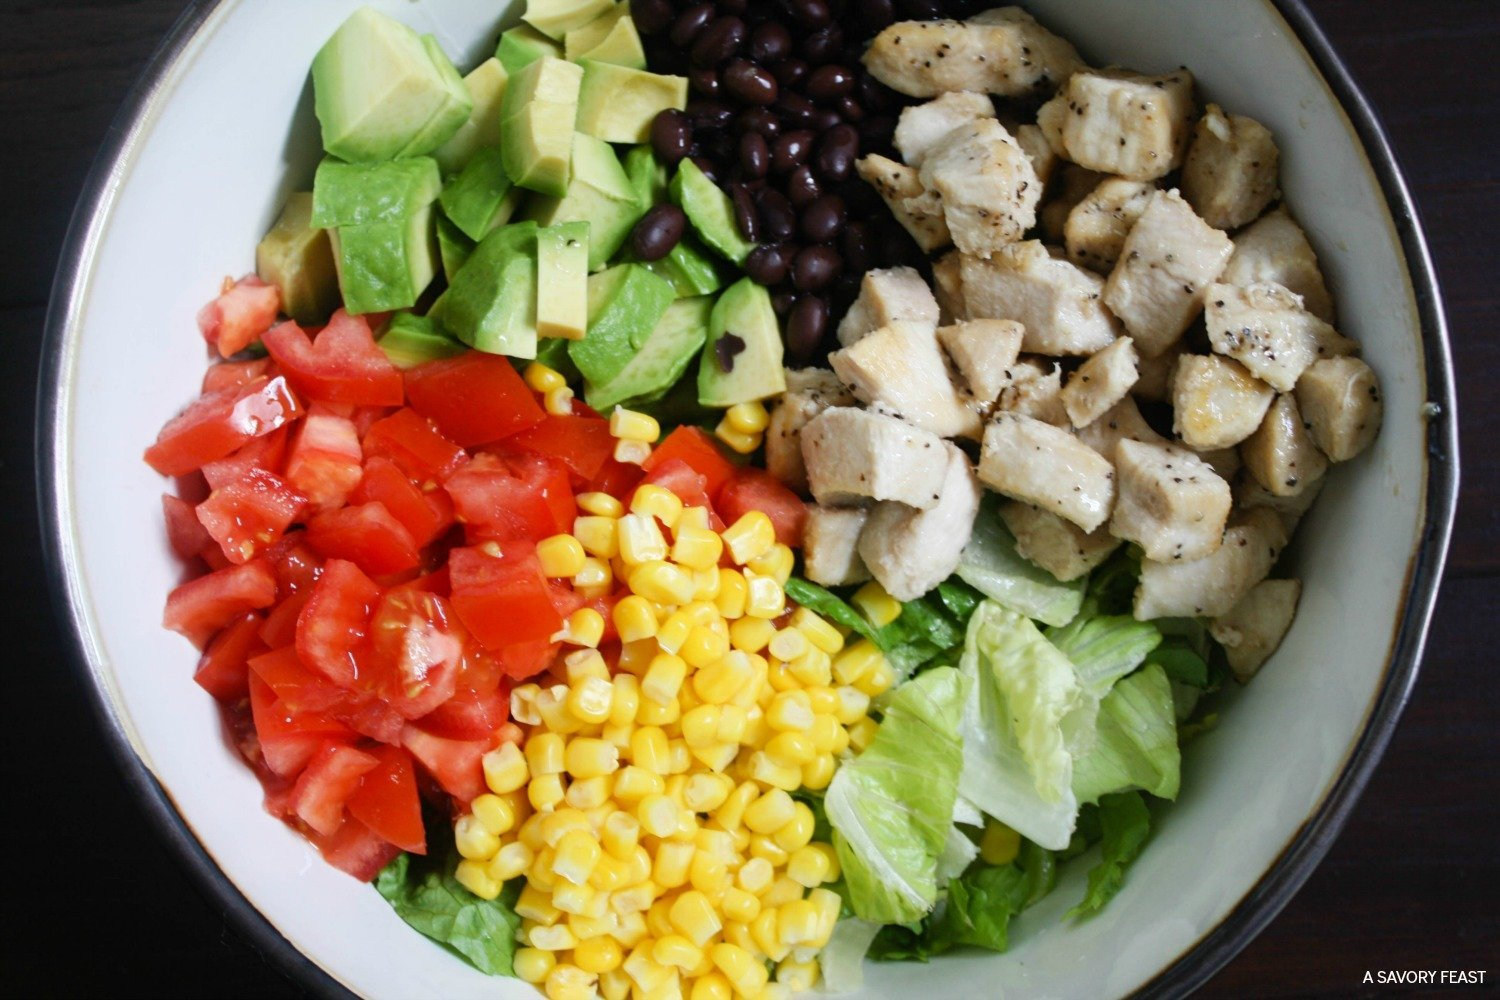 Bright, beautiful and packed with flavor! This nutritious, one dish dinner idea is a family favorite for busy nights. Southwest Salad combines lots of veggies like avocados, tomatoes, and corn with black beans, chicken and a homemade greek yogurt dressing!